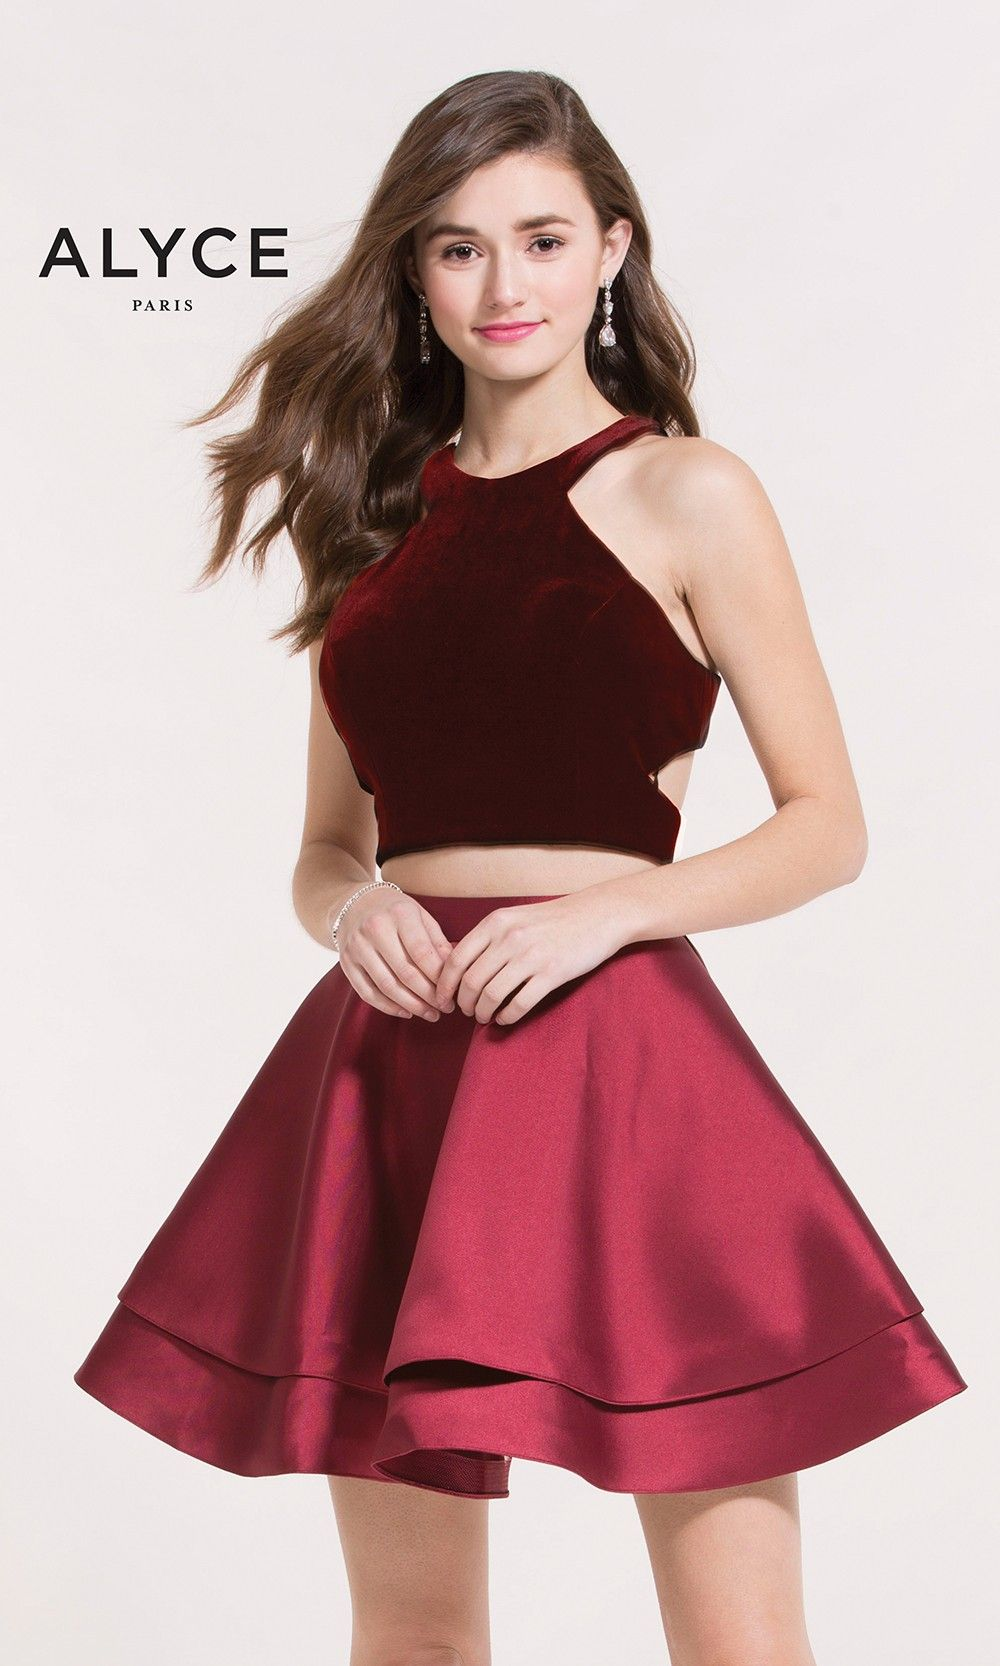 Alyce 2648 Wine Red Velvet Two-Piece Short Dress | Homecoming dance ...